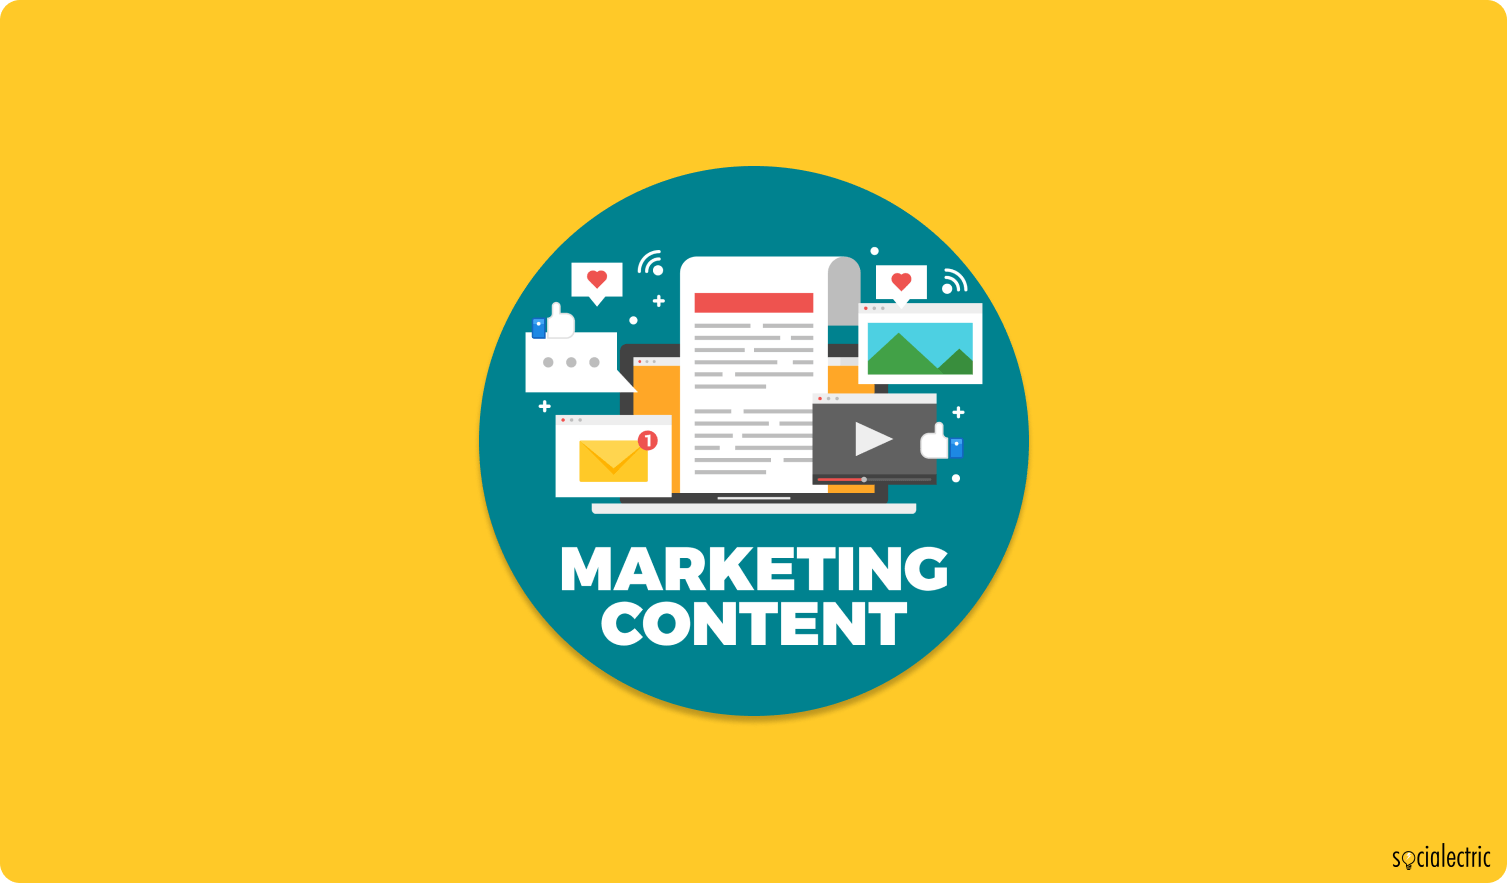 More-catchy-content-can-attract-customer-to-stay-more-longer